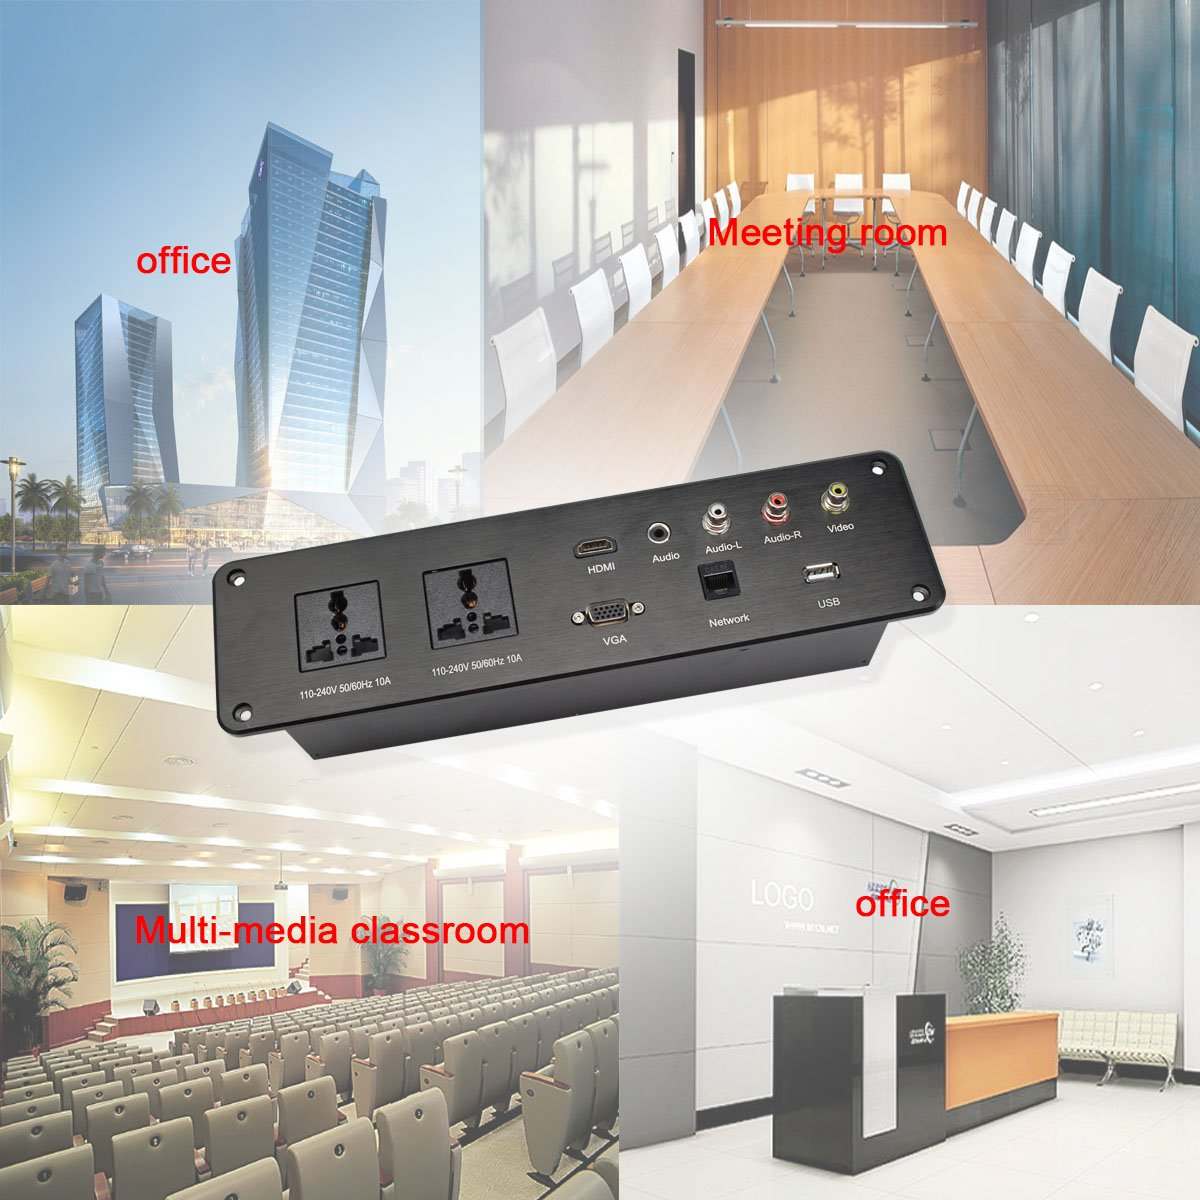 Multifunctional Tabletop Power Outlet Conference Table Cable Cubby Socket for Countertops Worktop